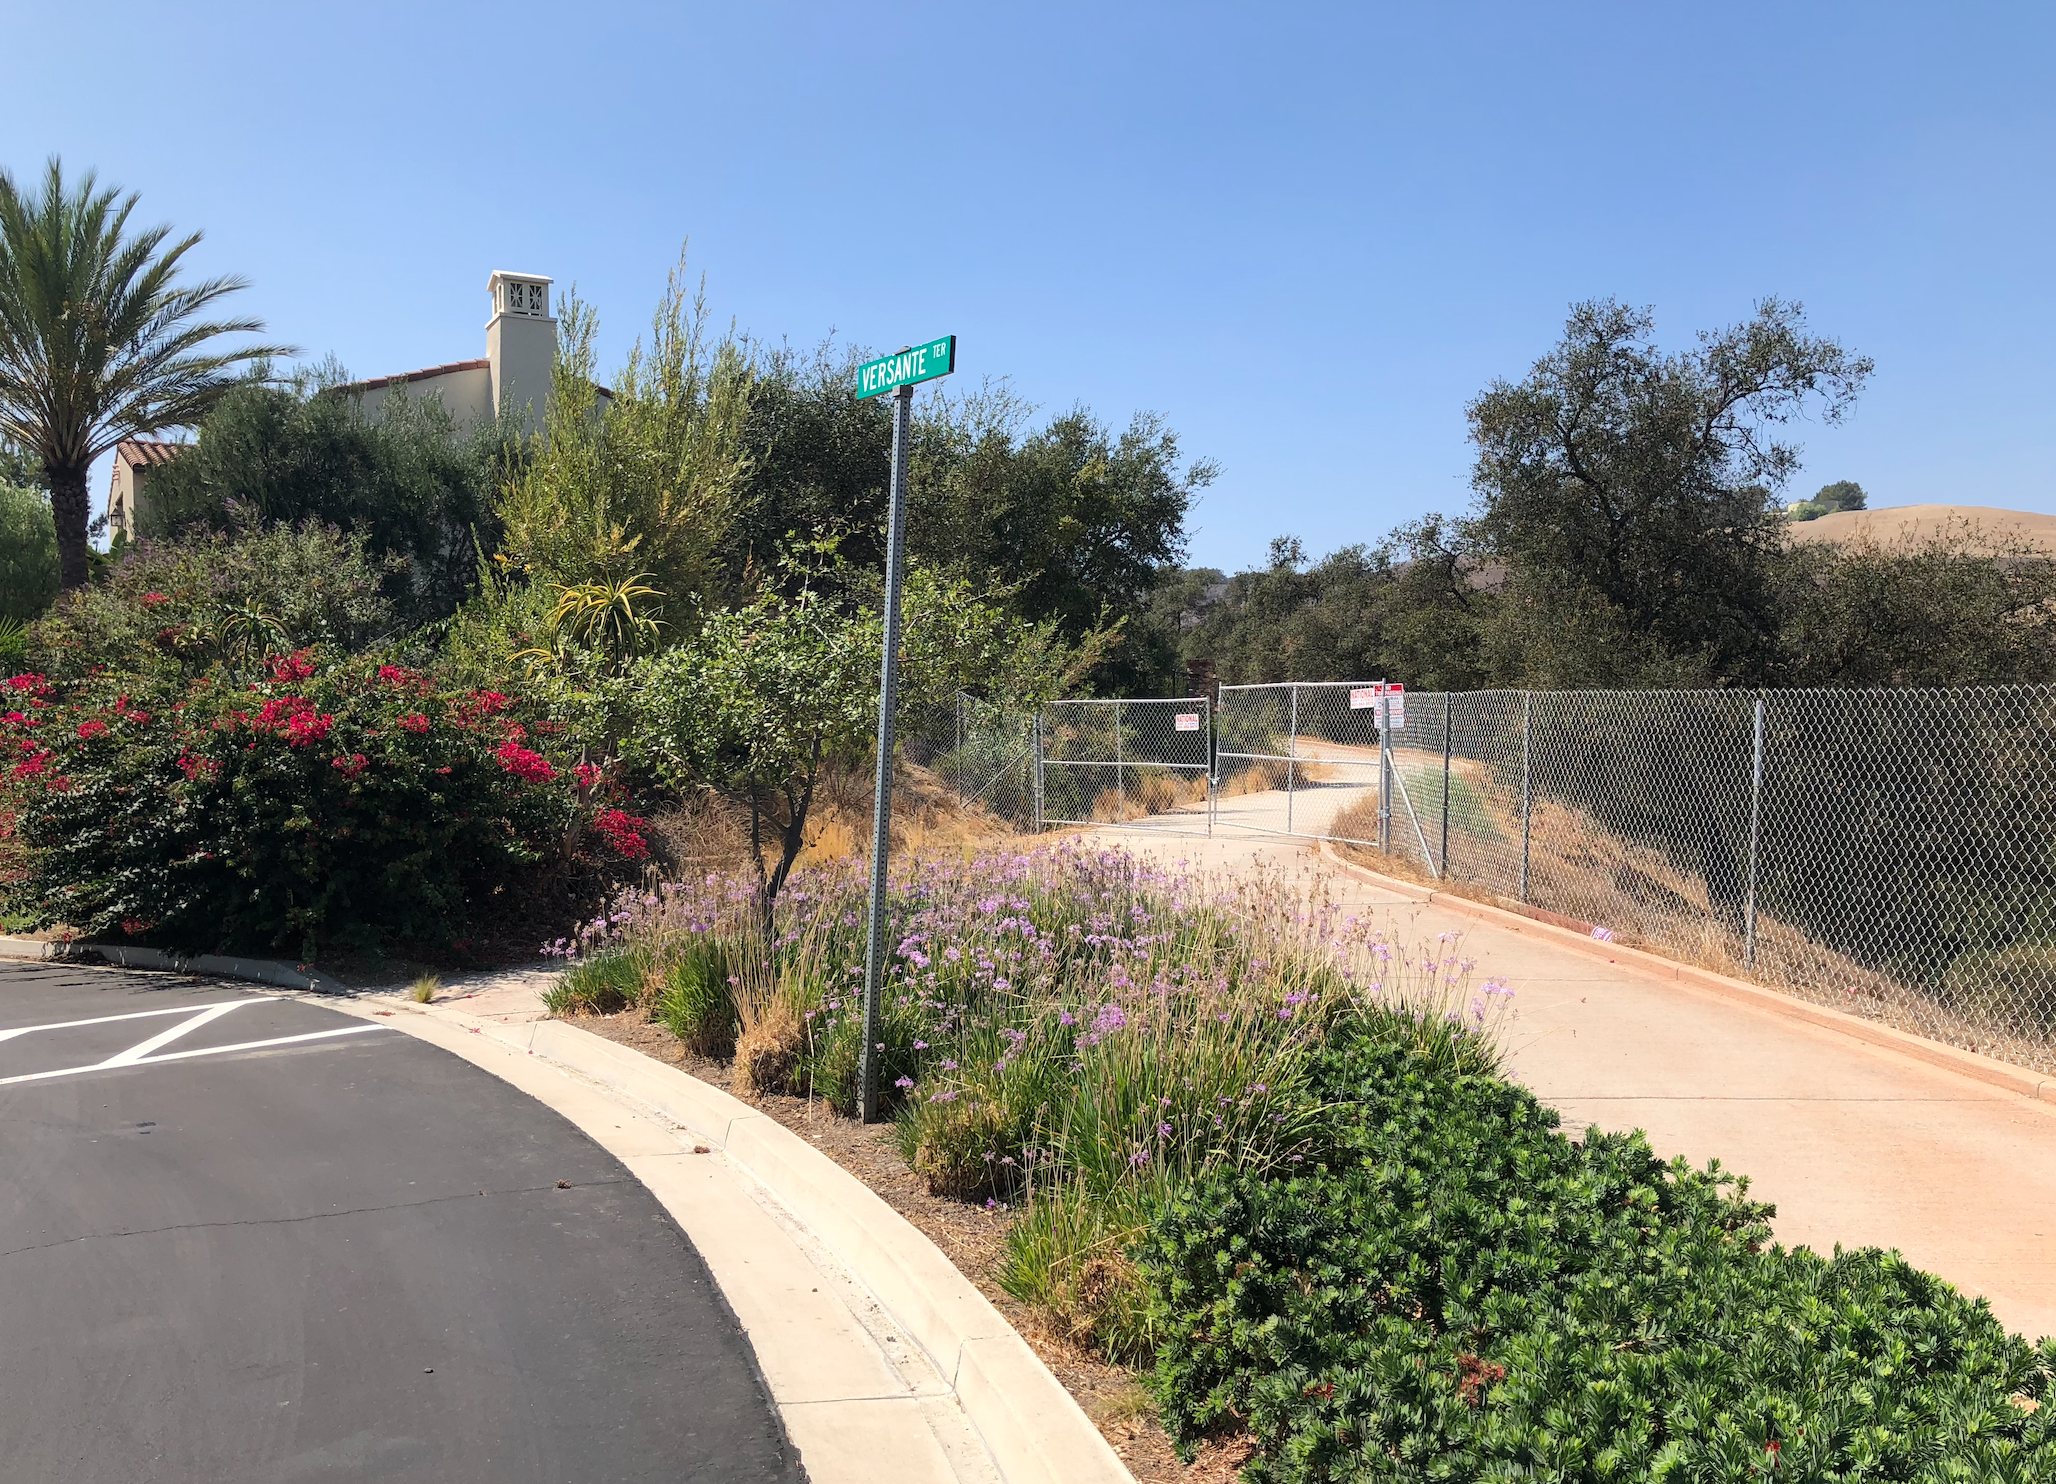 Un-permitted ILLEGAL fence installed by WGP-Vellano-llc